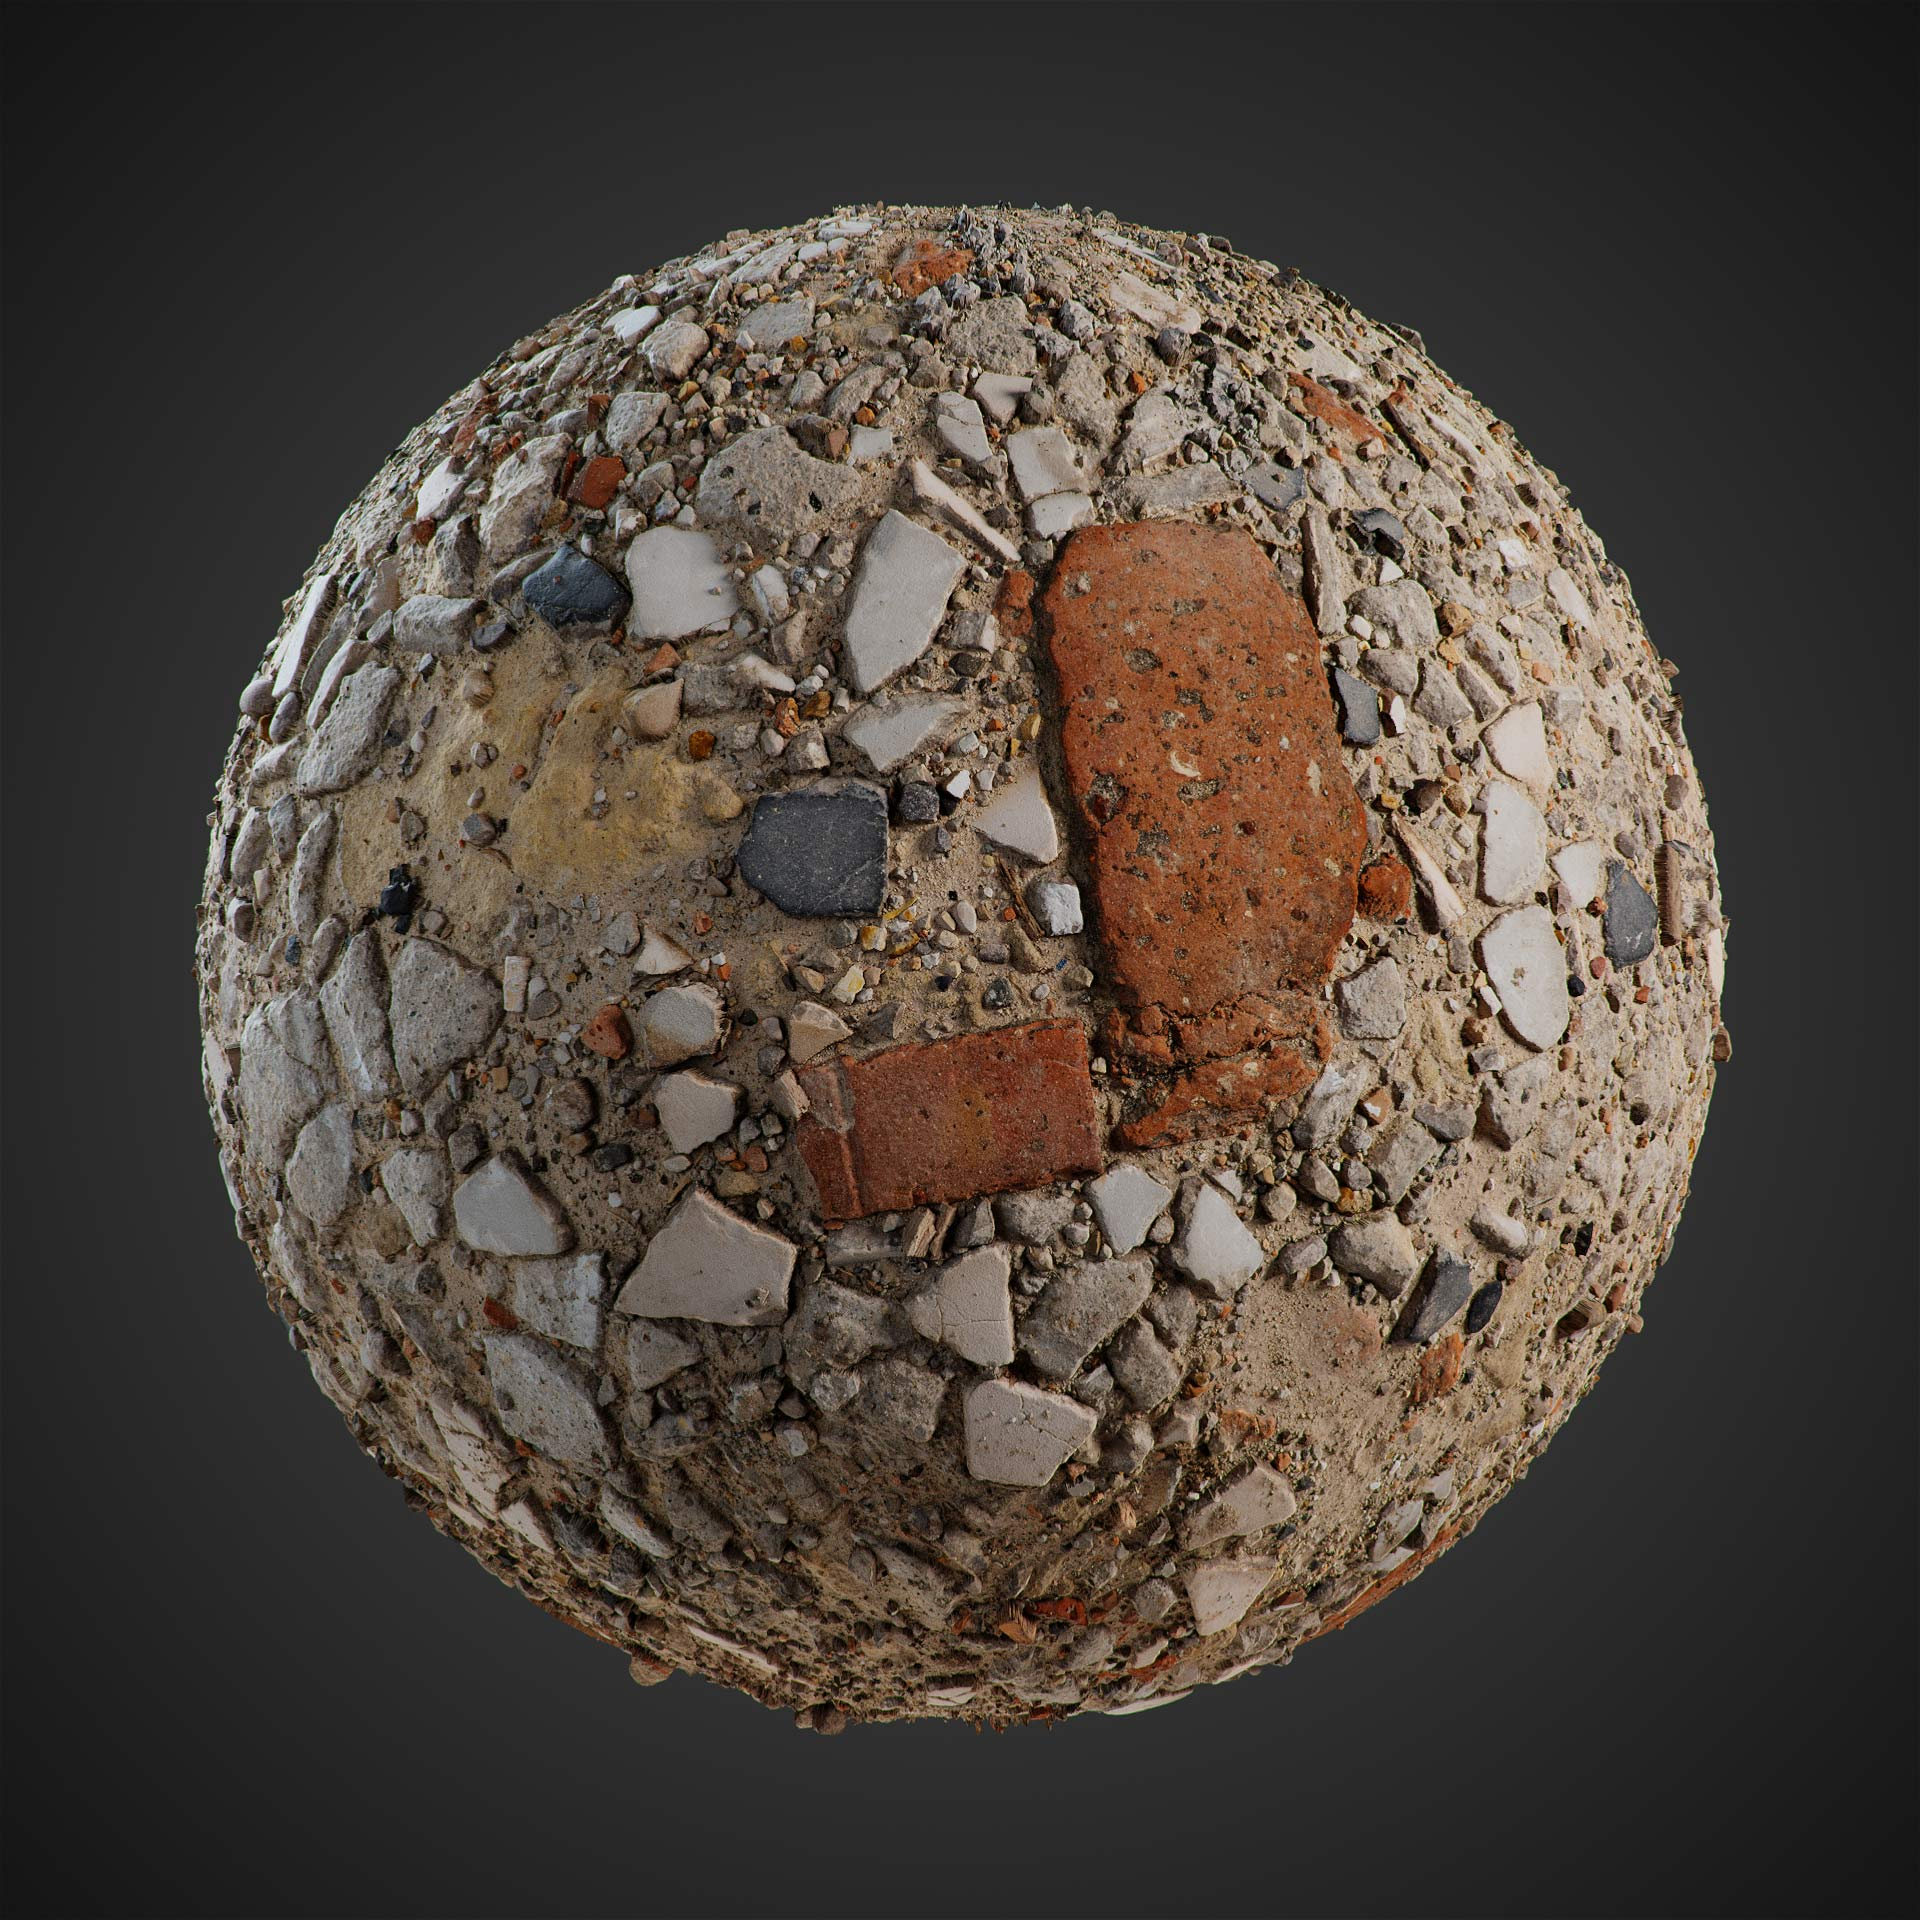 The image shows a sphere with the rubble texture